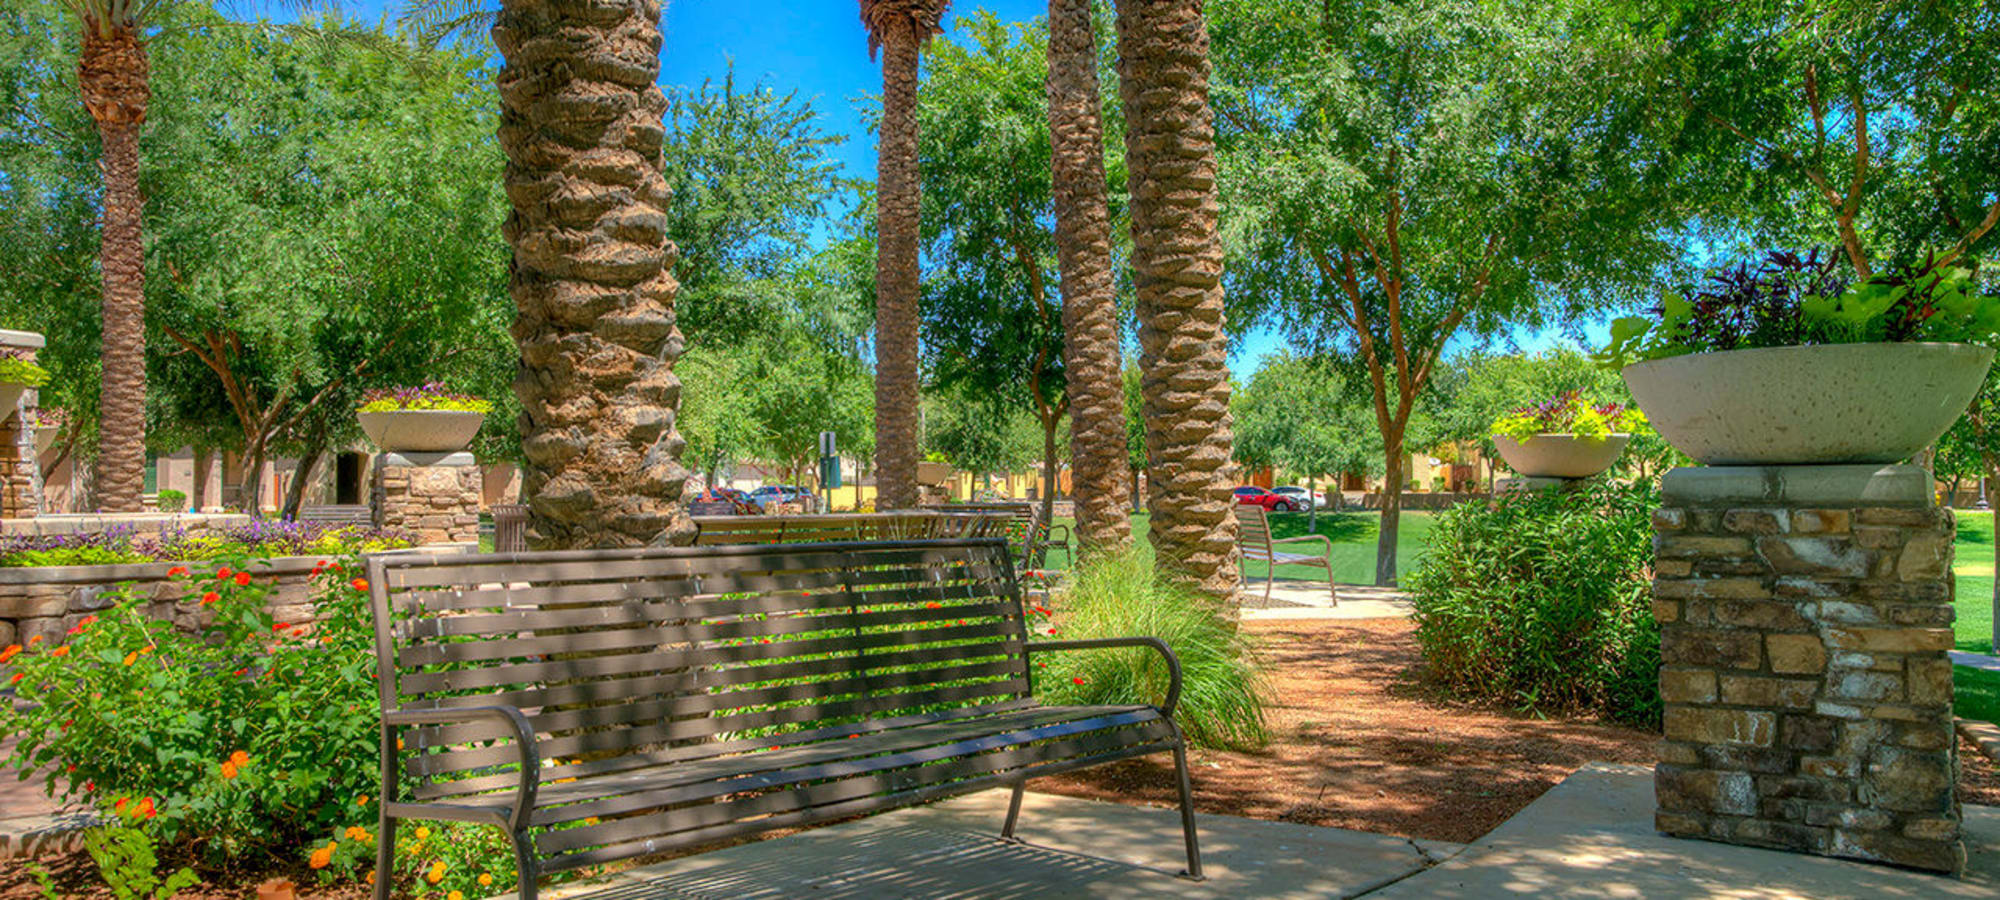 Park bench under large palm trees at BB Living at Higley Park in Gilbert, Arizona